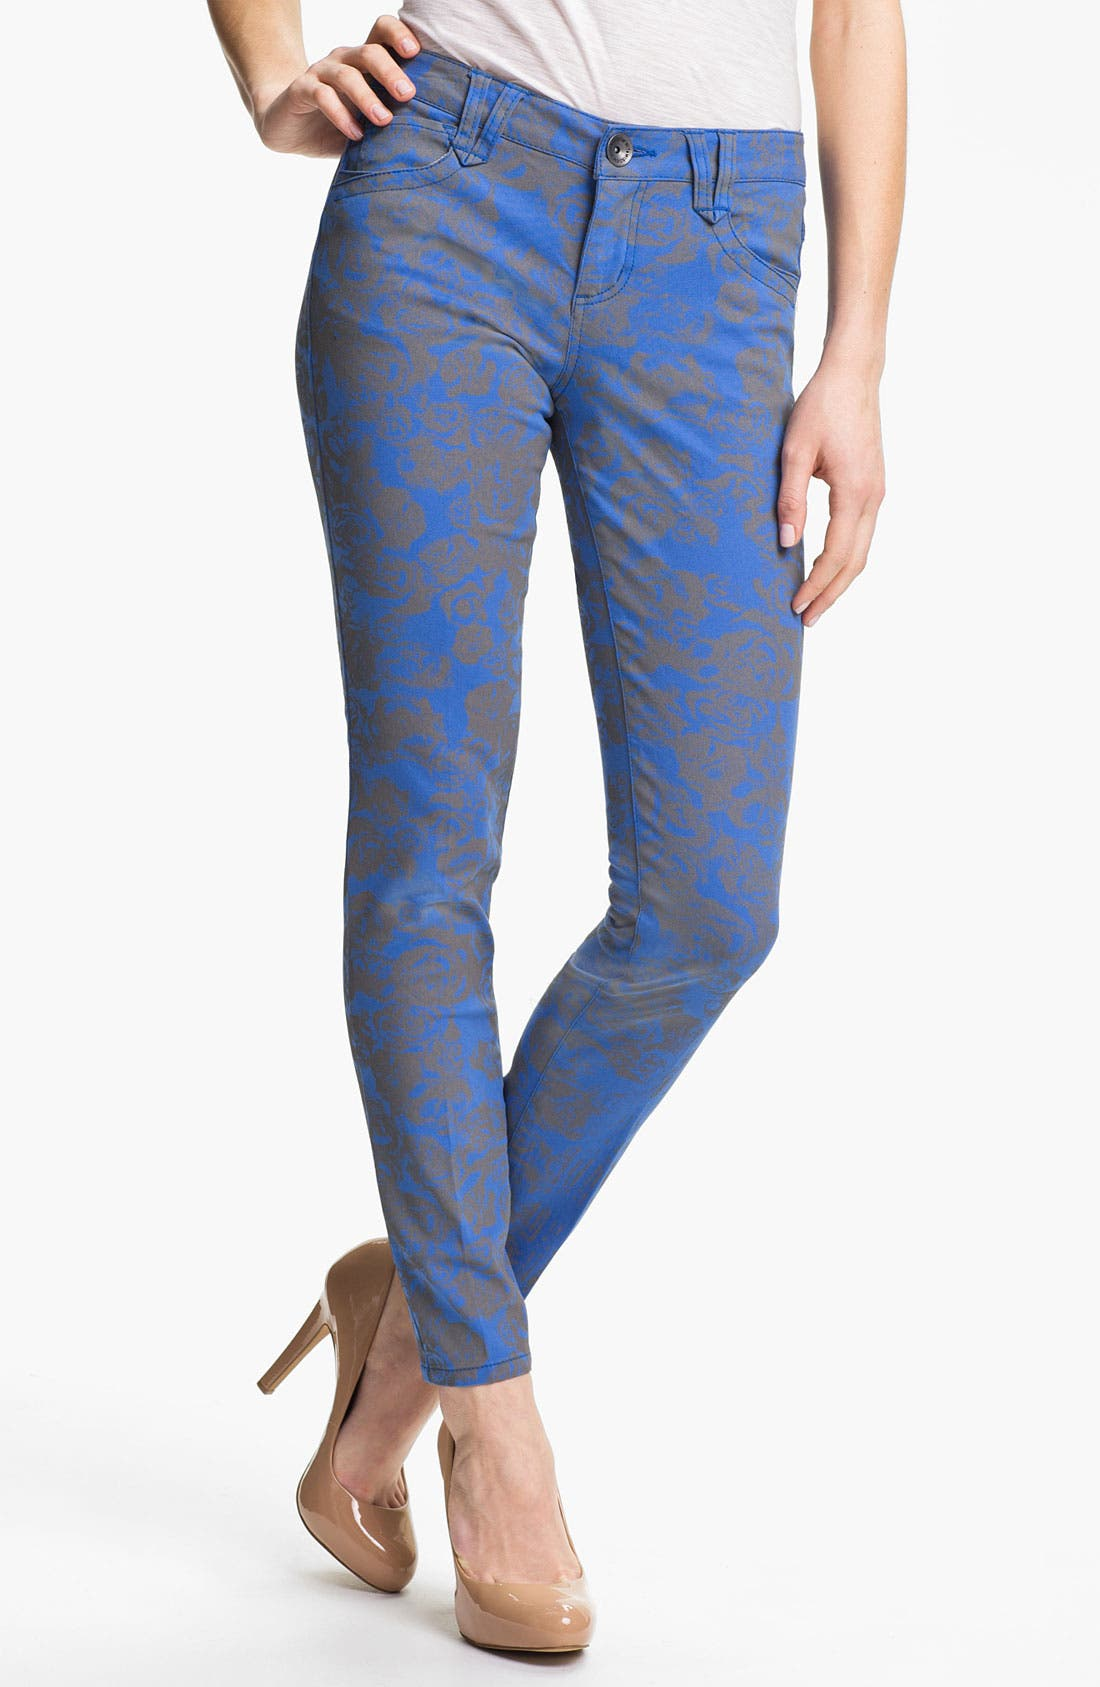 Alternate Image 1 Selected - Wit & Wisdom Floral Print Skinny Jeans (Indigo) (Nordstrom Exclusive)